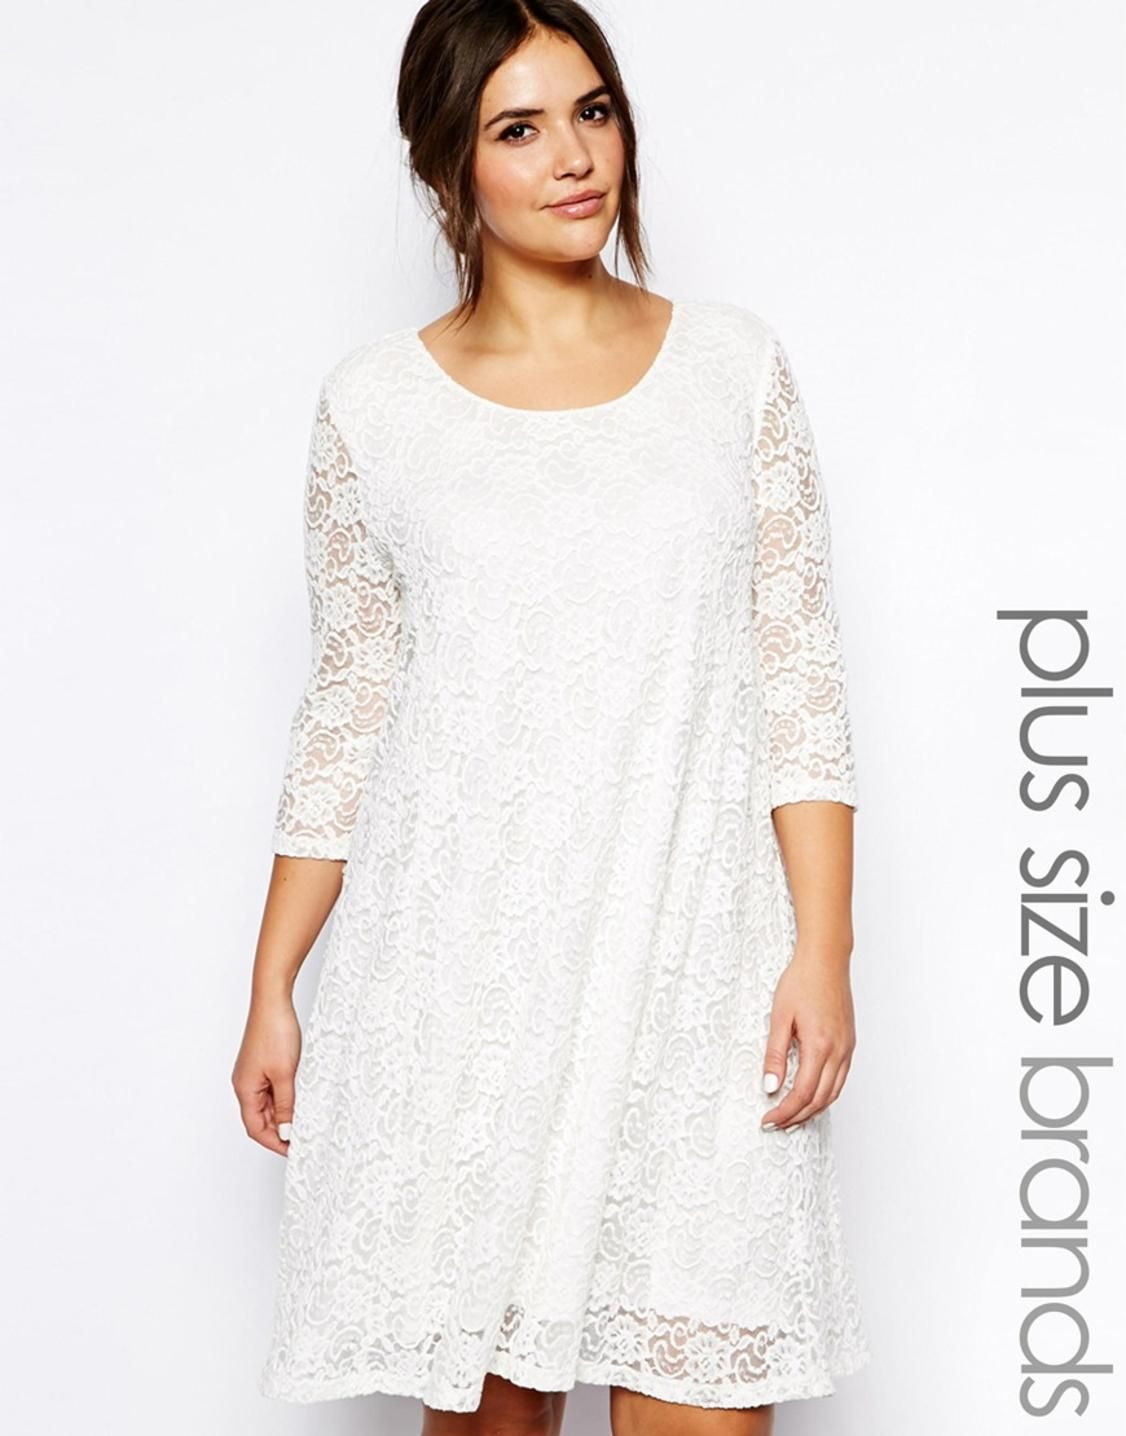 truly you lace skater dress http://picvpic/women-dresses